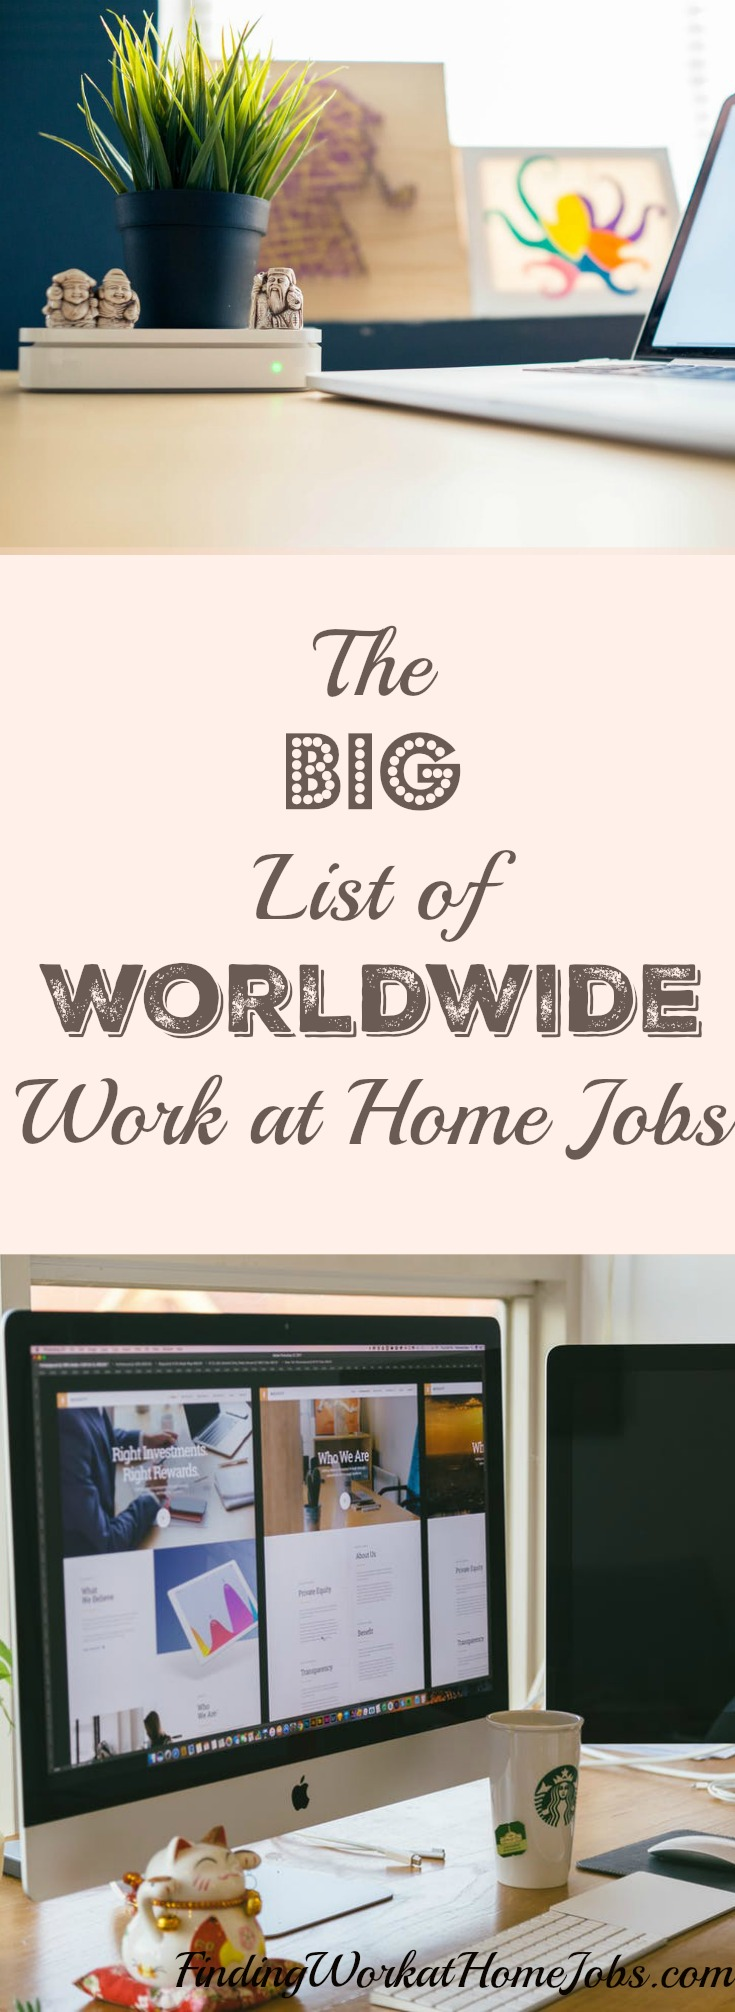 work at home jobs worldwide